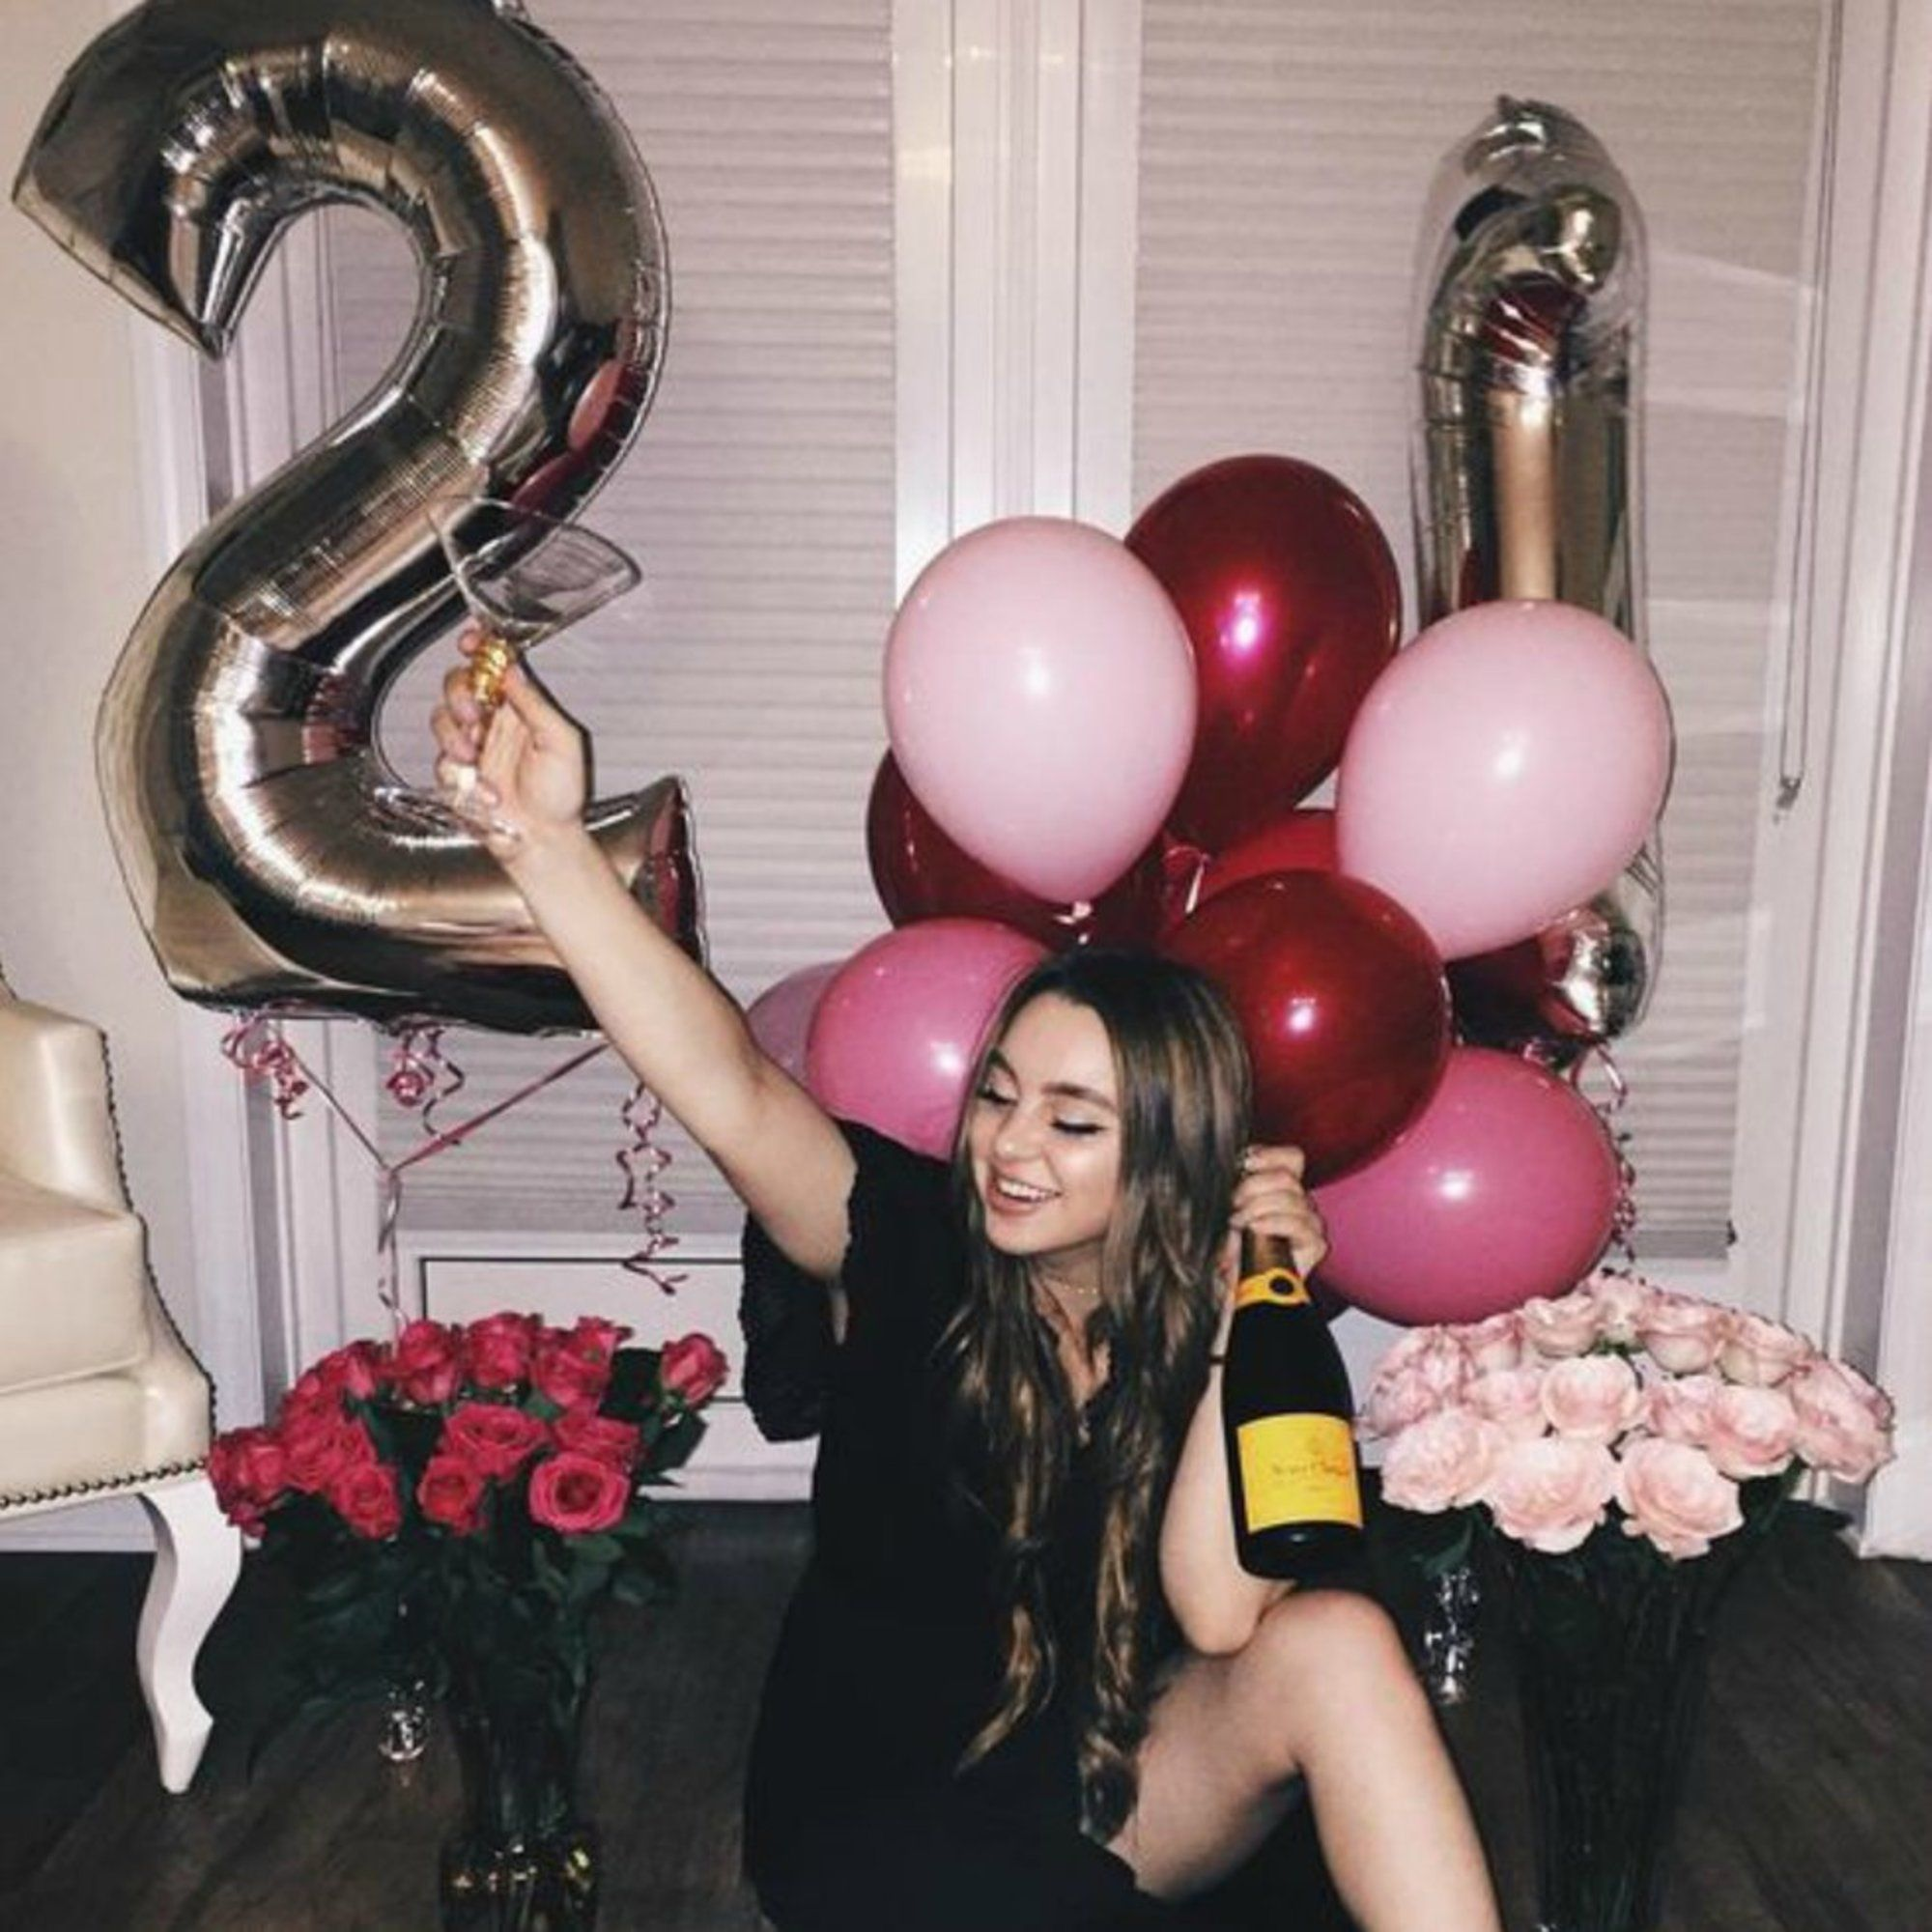 21 Beer Rific Instagram Captions For Your 21st Birthday 21st Birthday Photoshoot 21st Birthday Pictures Birthday Photoshoot